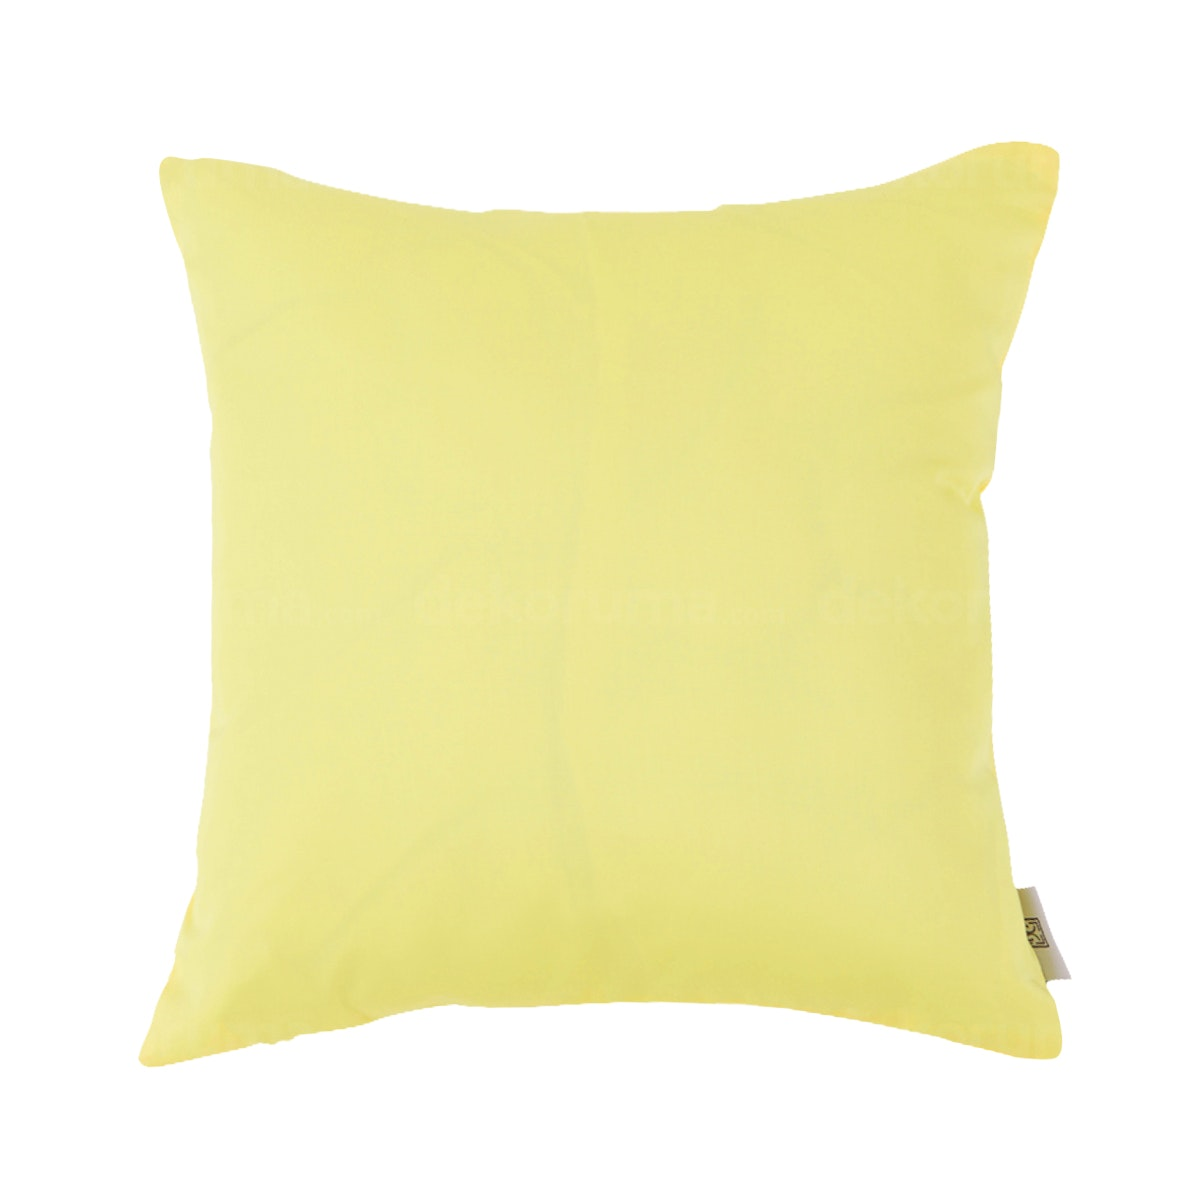 Glerry Home Decor Sunshine Cushion 40x40cm (Insert+Cover)